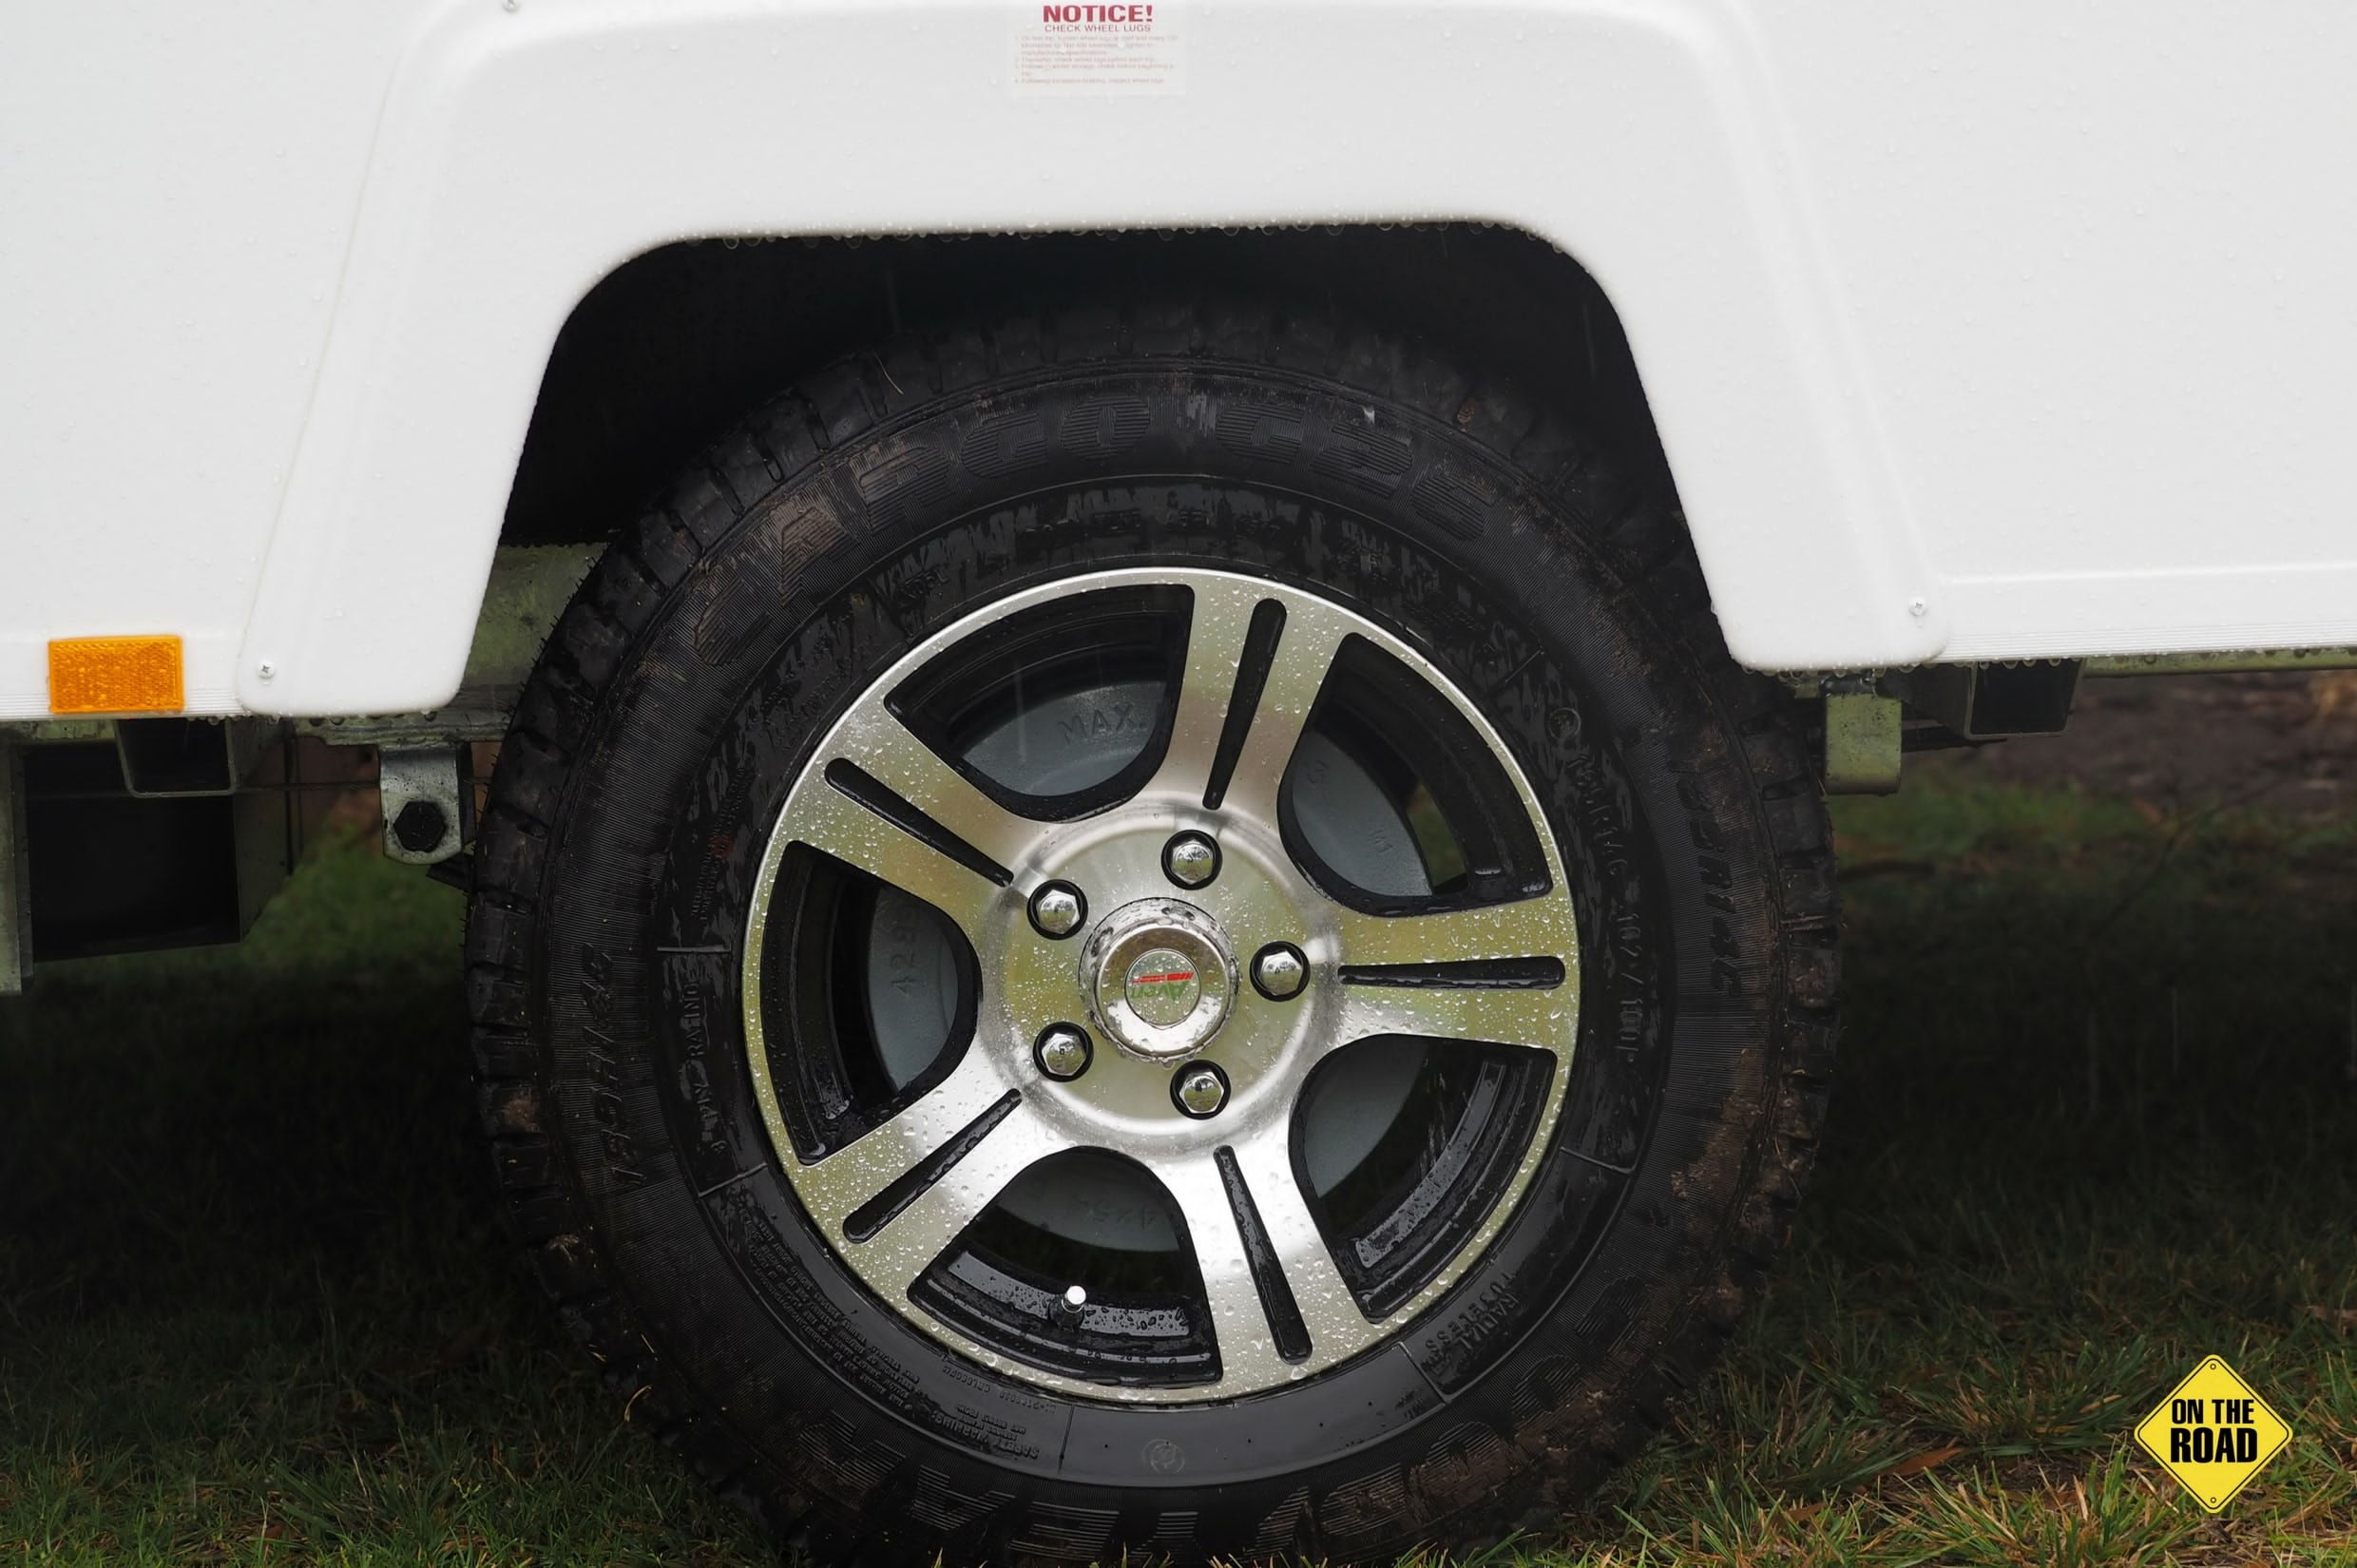 14 alloy wheels with 185R light truck tyres